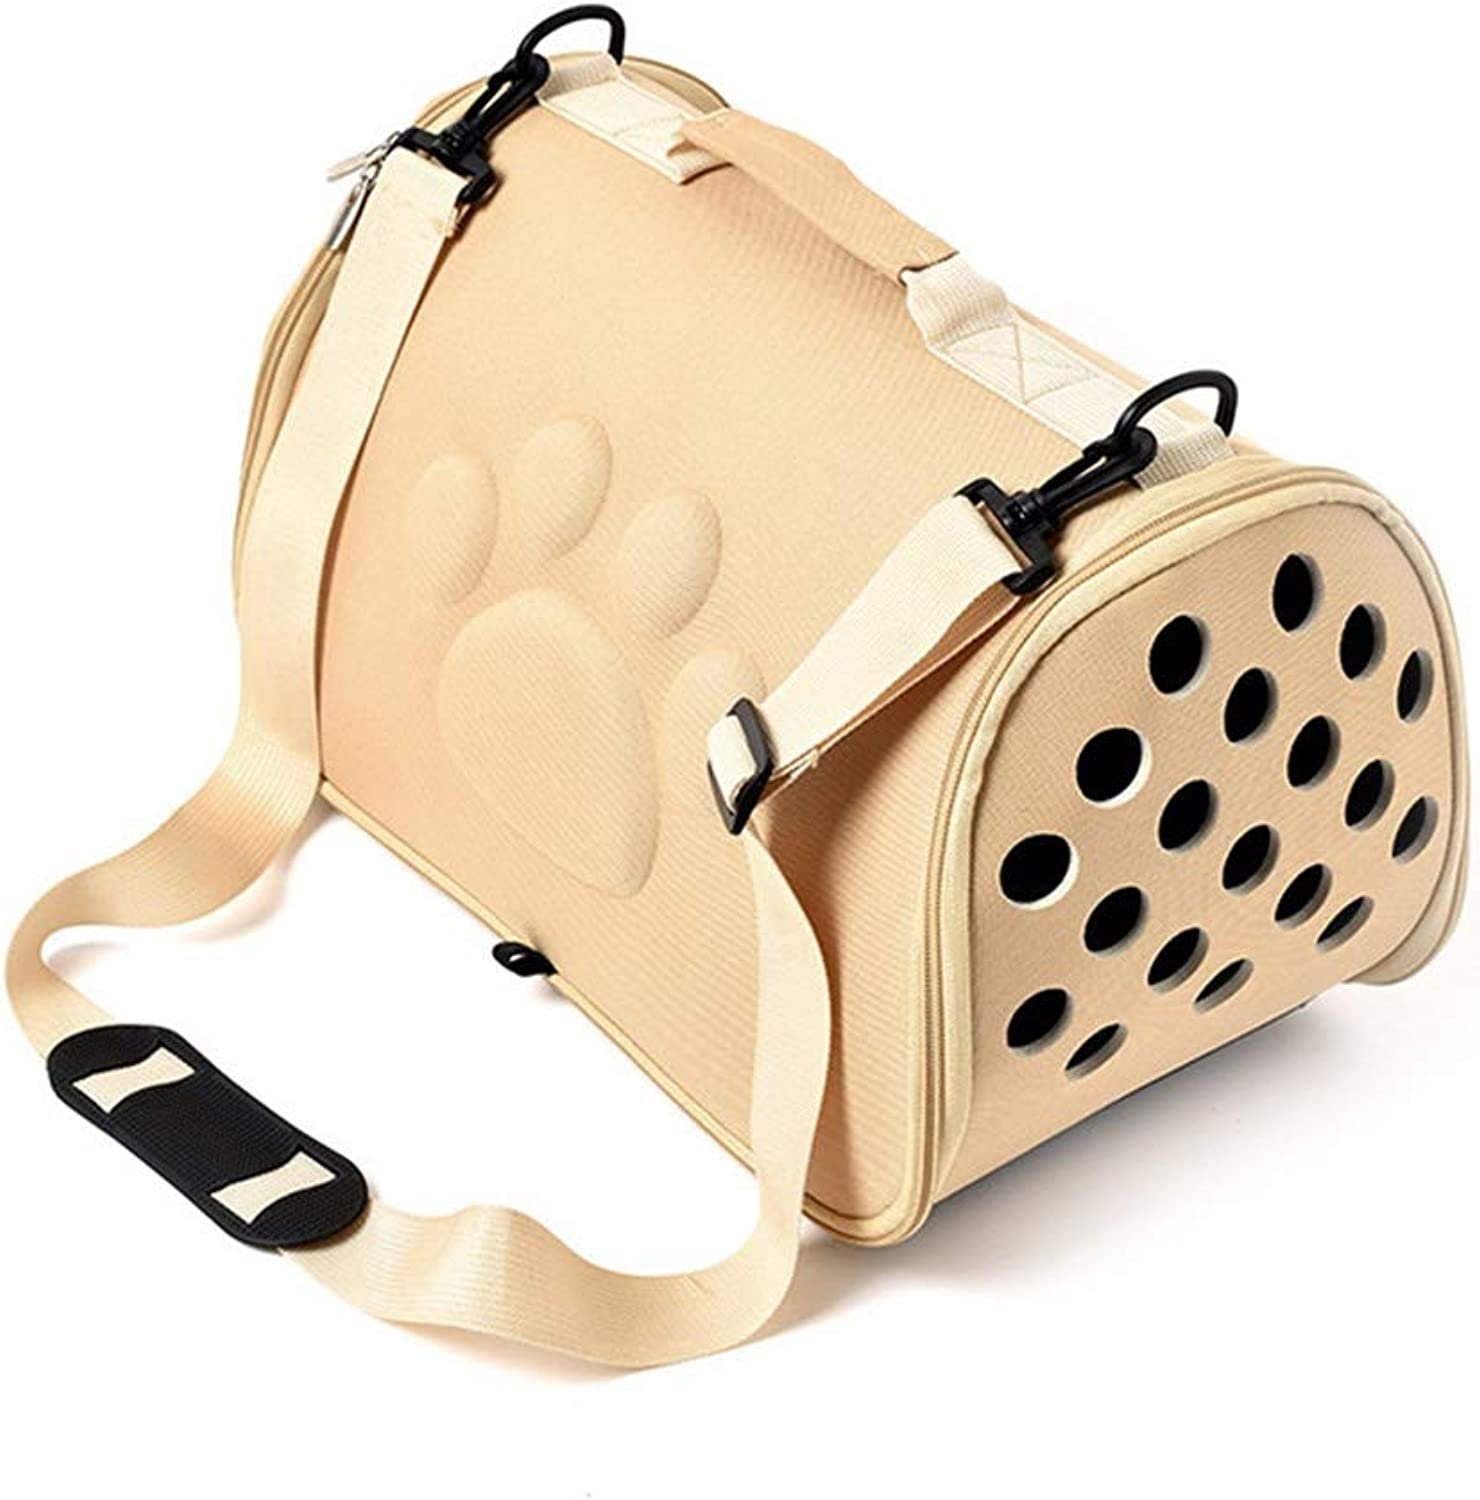 Pet Bag Portable Mobile Diagonal Bag Light Breathable Easy to Clean and Store Out Dog Bag Cat Bag (color   A, Size   Large)